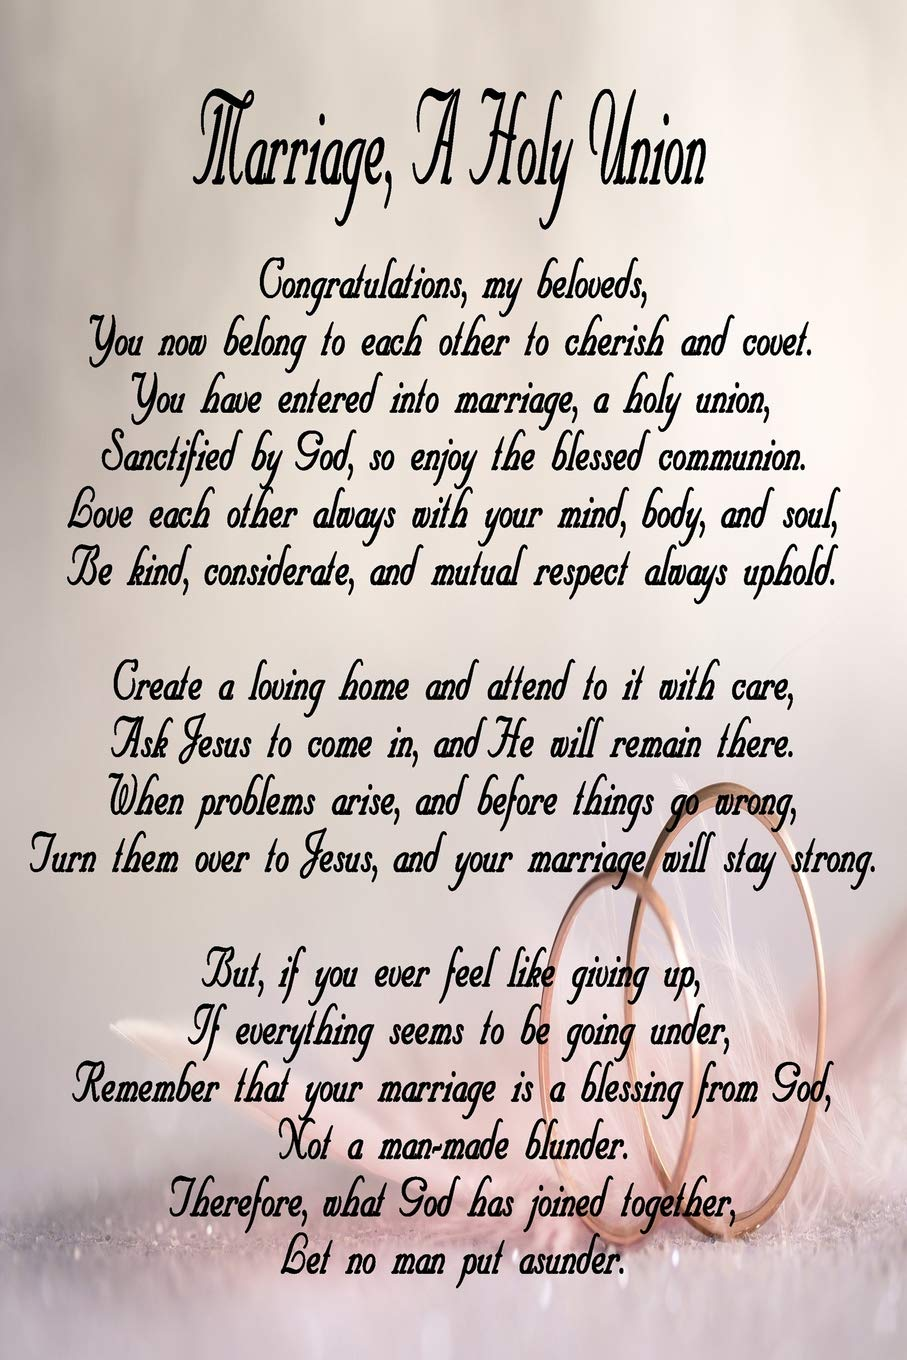 Marriage A Holy Union Journal For Newlyweds 6x9 Blank Lined 120 Page Wedding Poem Planner Notebook Christian Wedding Card Alternative Married Couple Gift Wedding Rings Series Journals Nimble Muse 9781095215340 Amazon Com Books